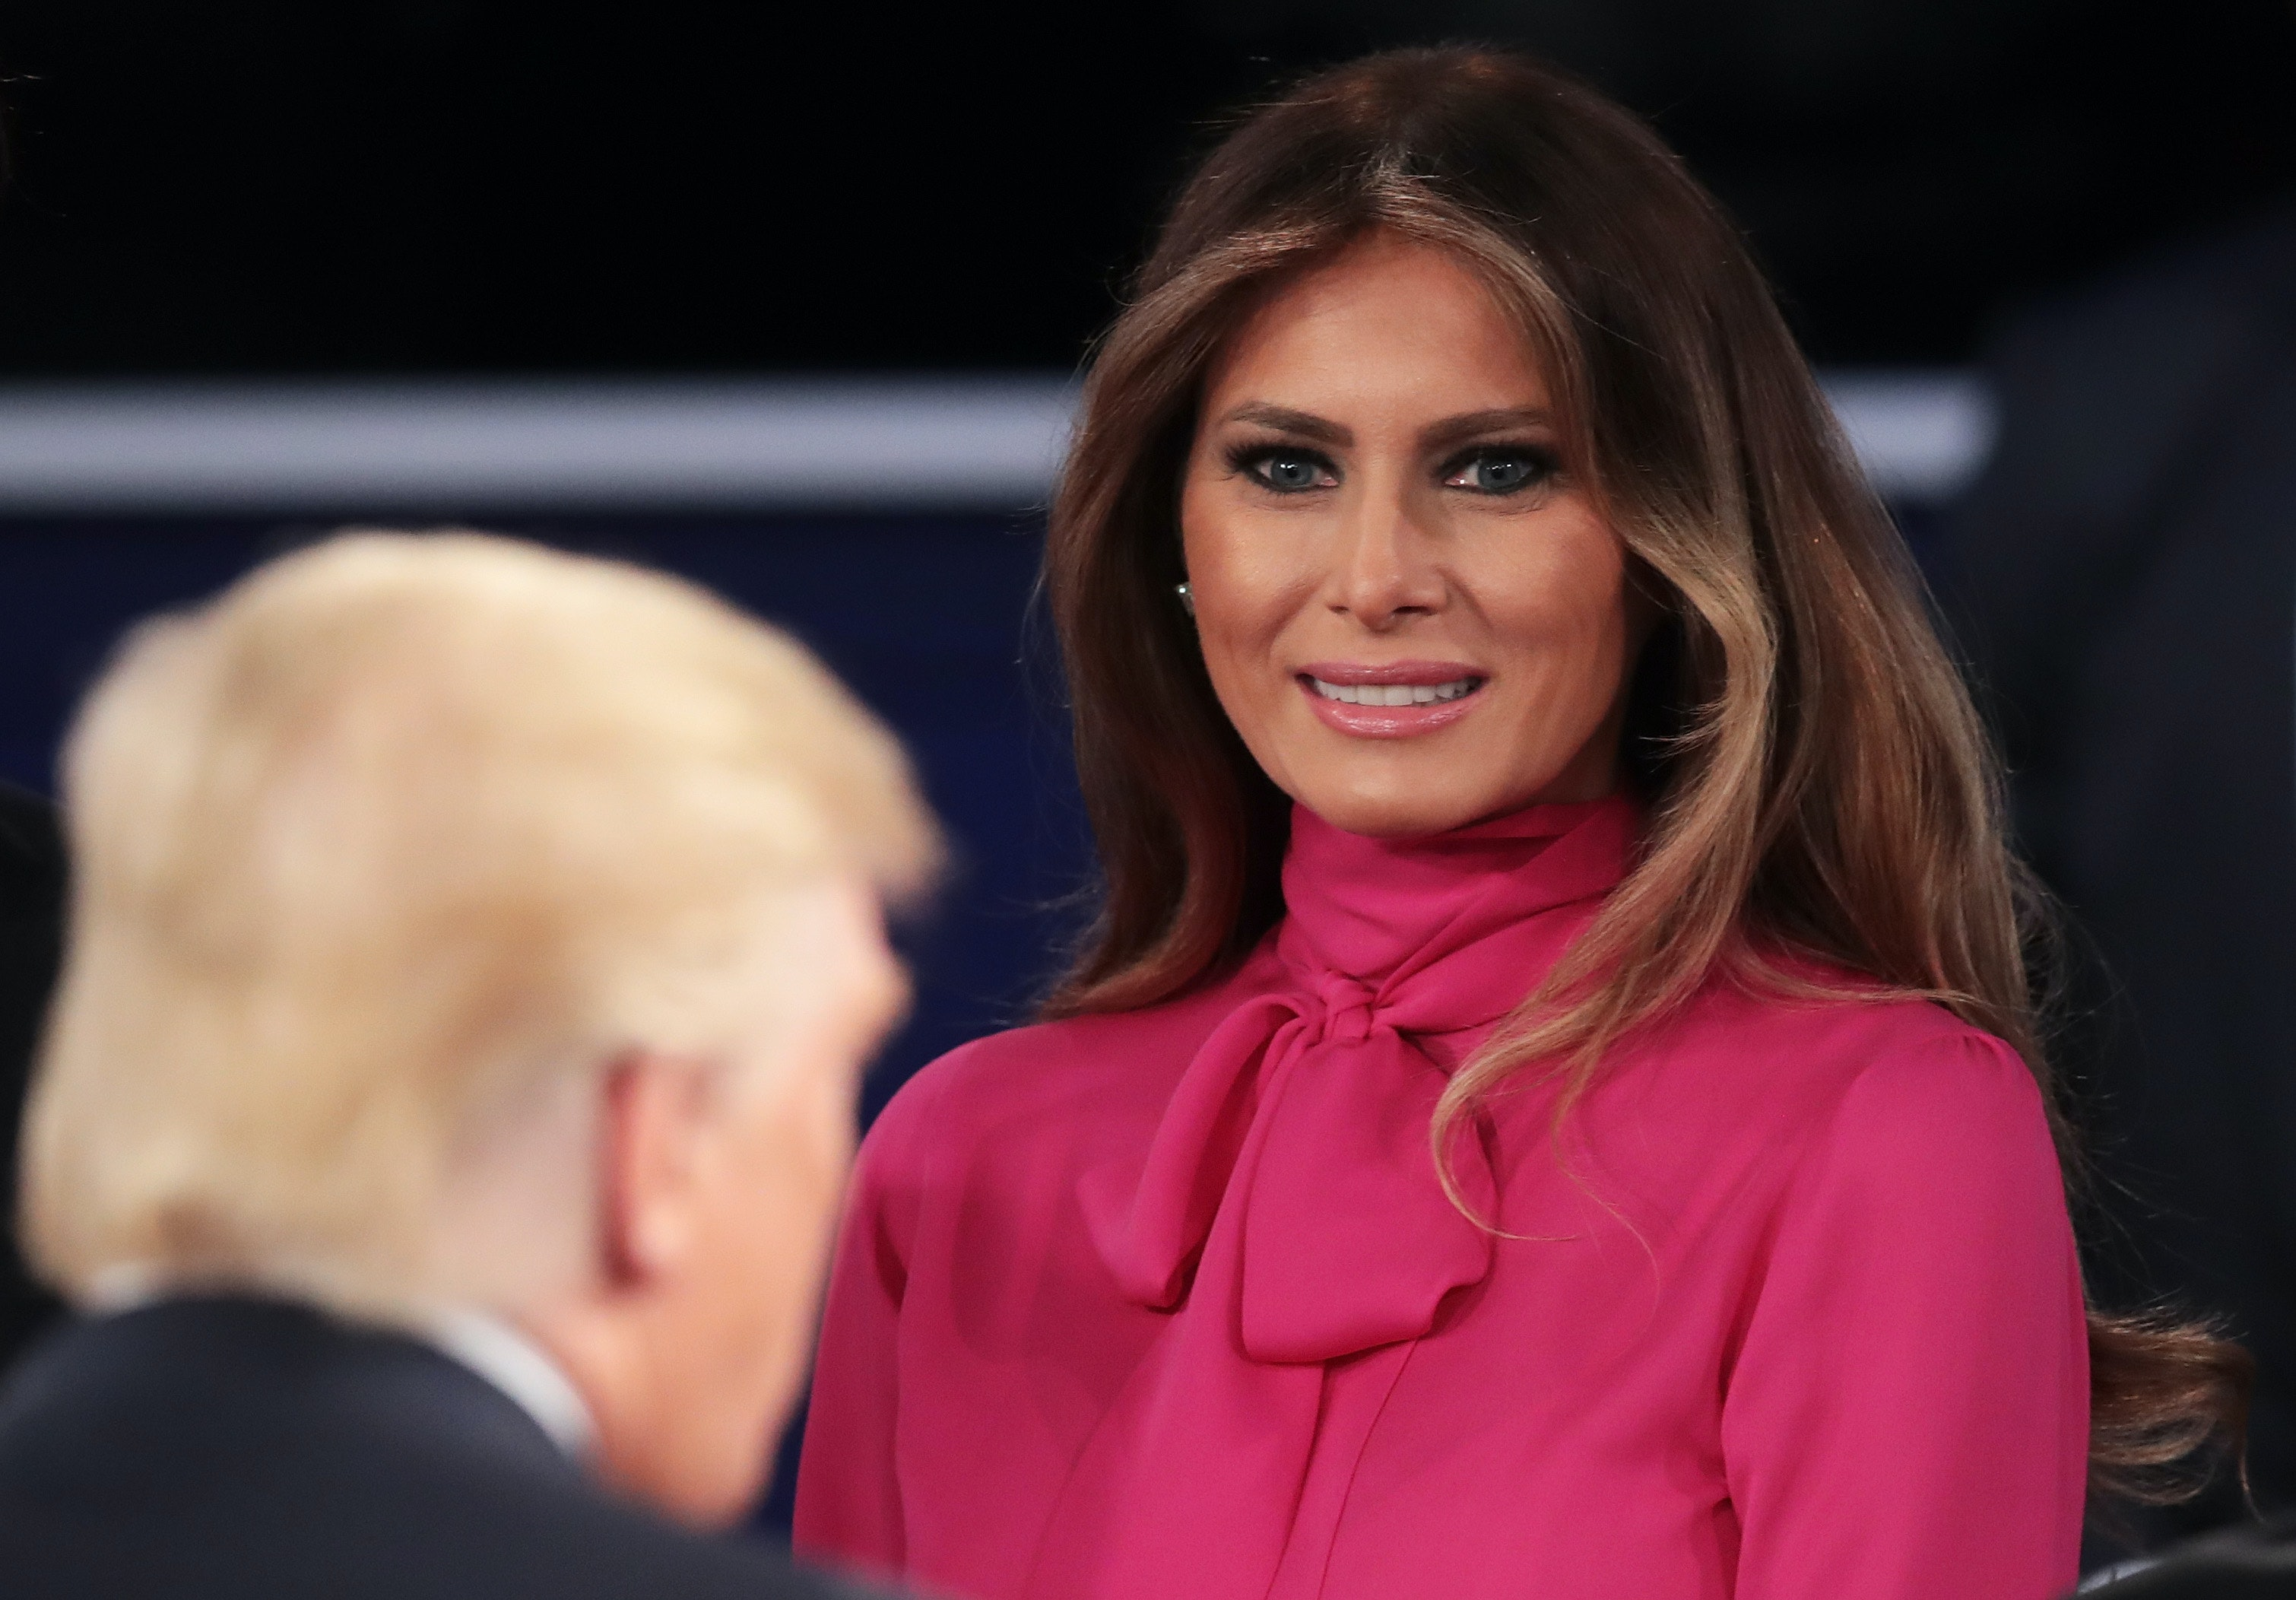 Melania Trump appears on Vanity Fair Mexico cover amid political tensions